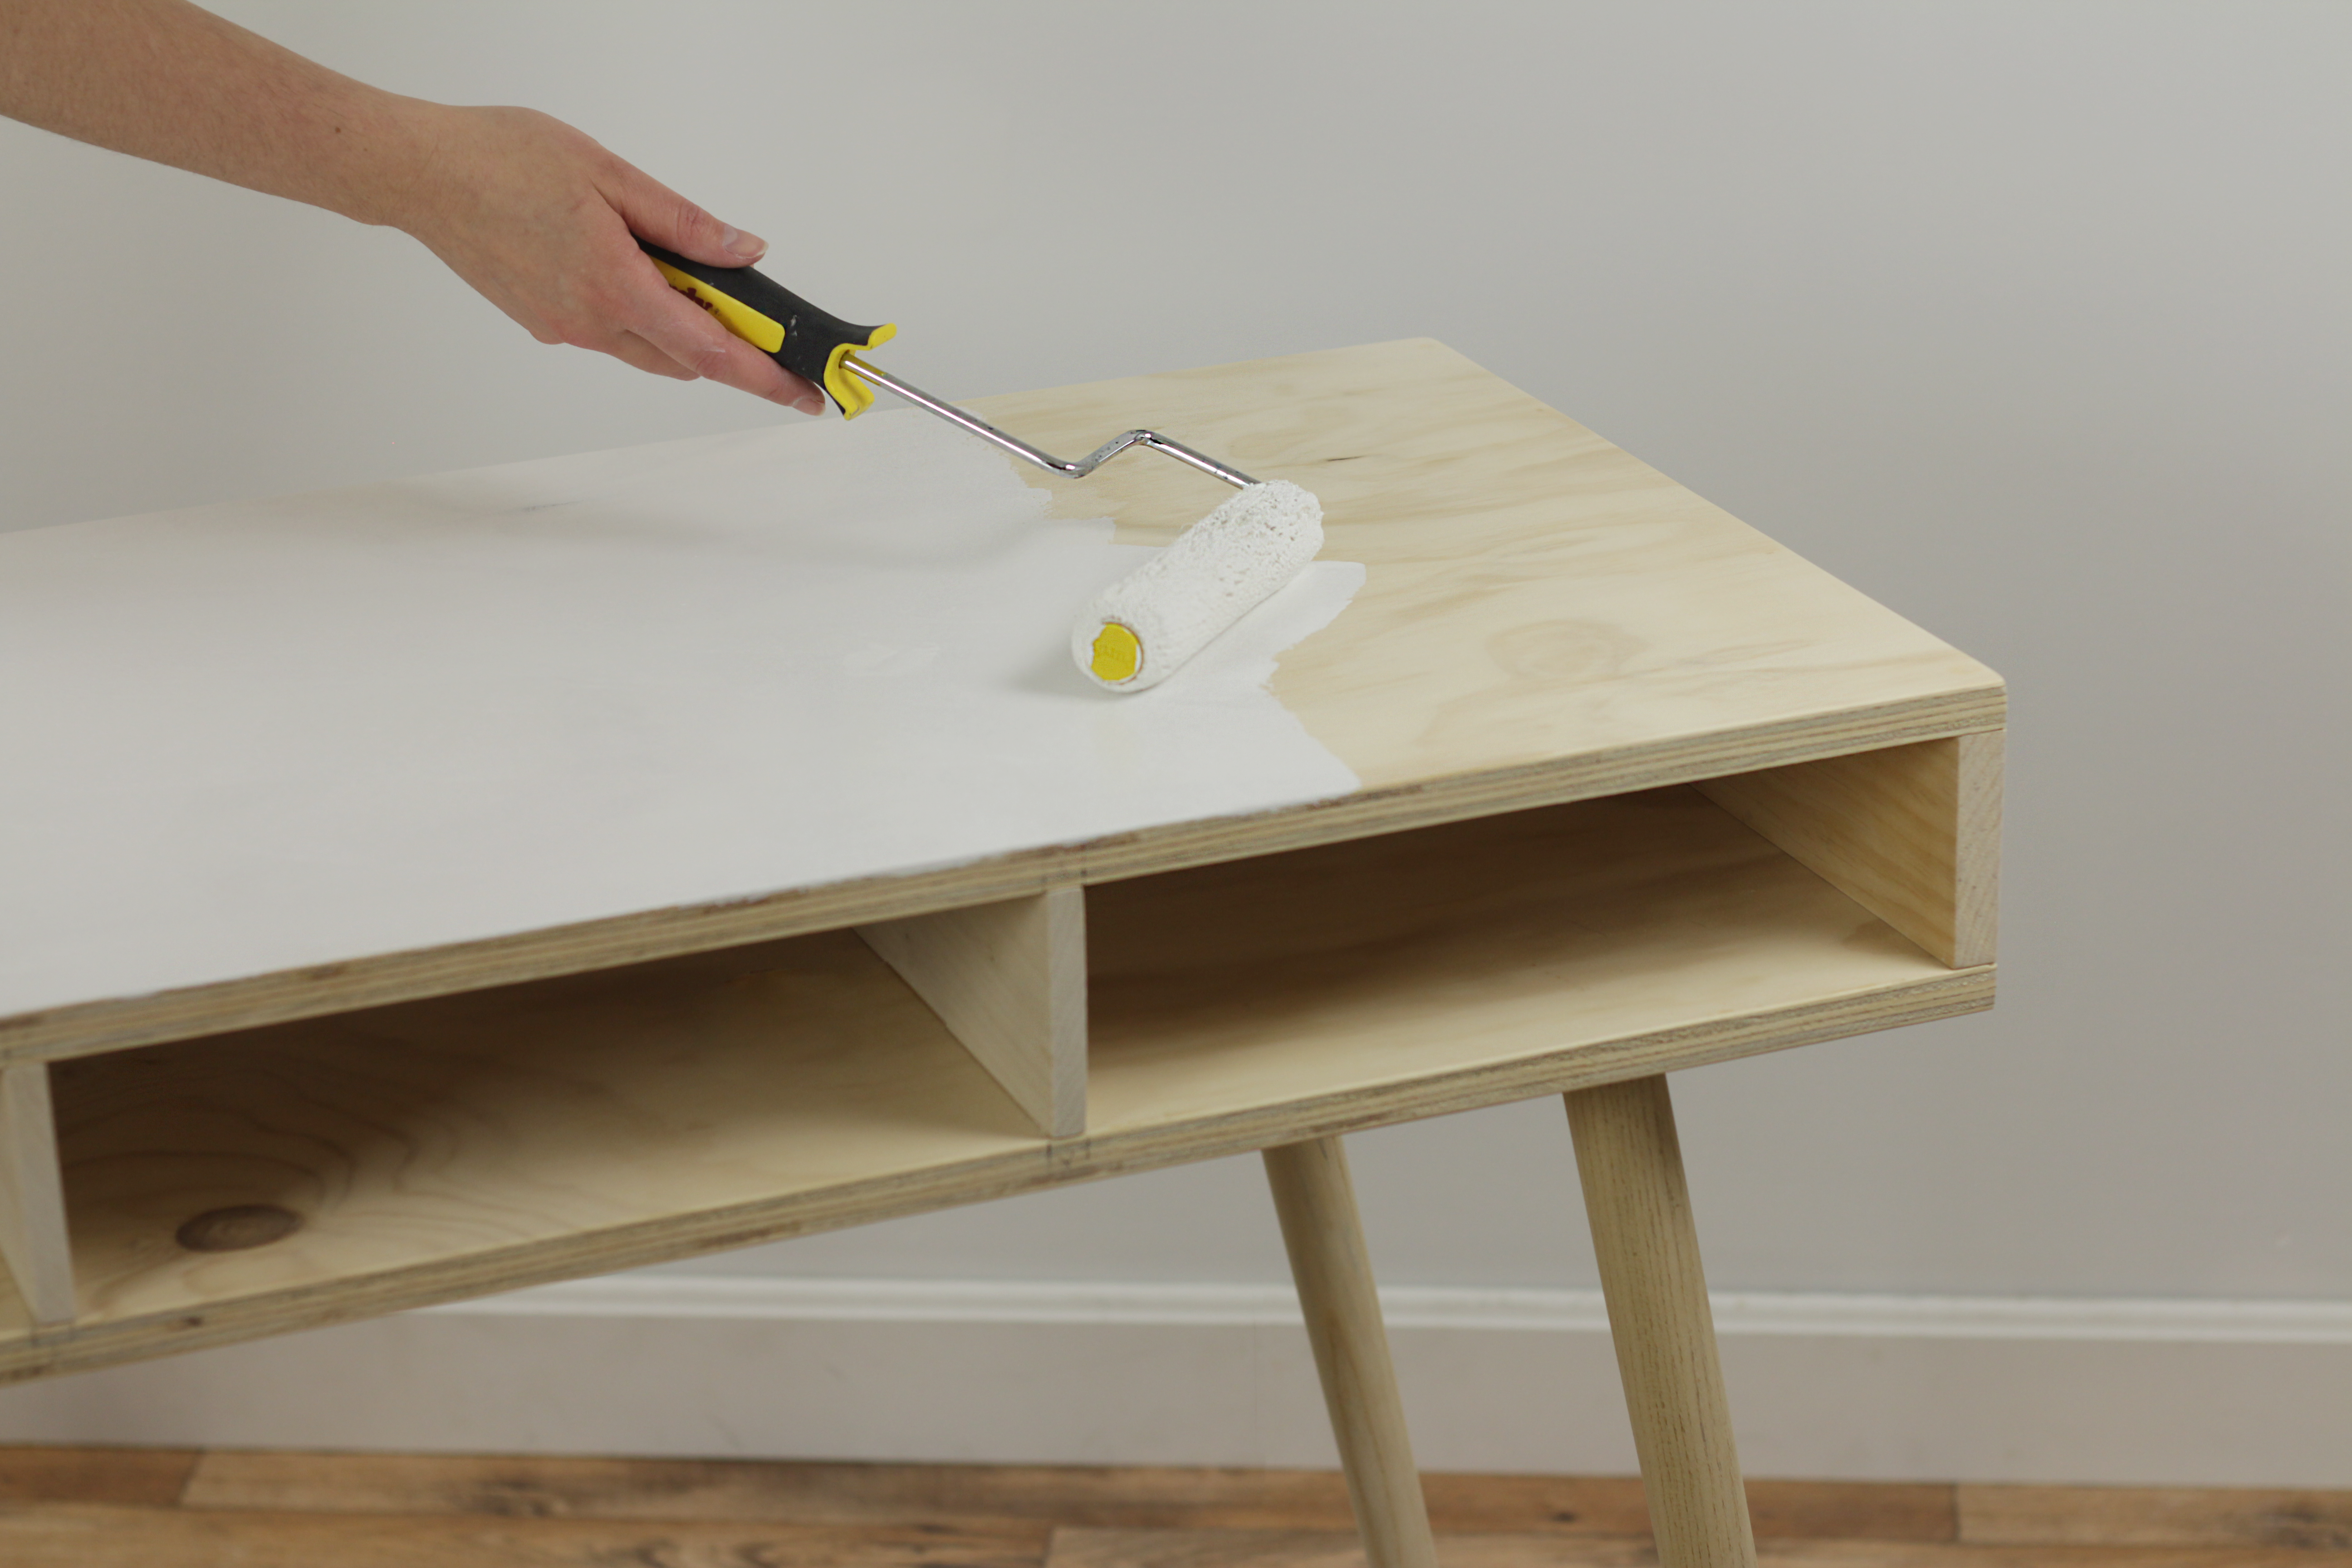 Painting a bare wood desk